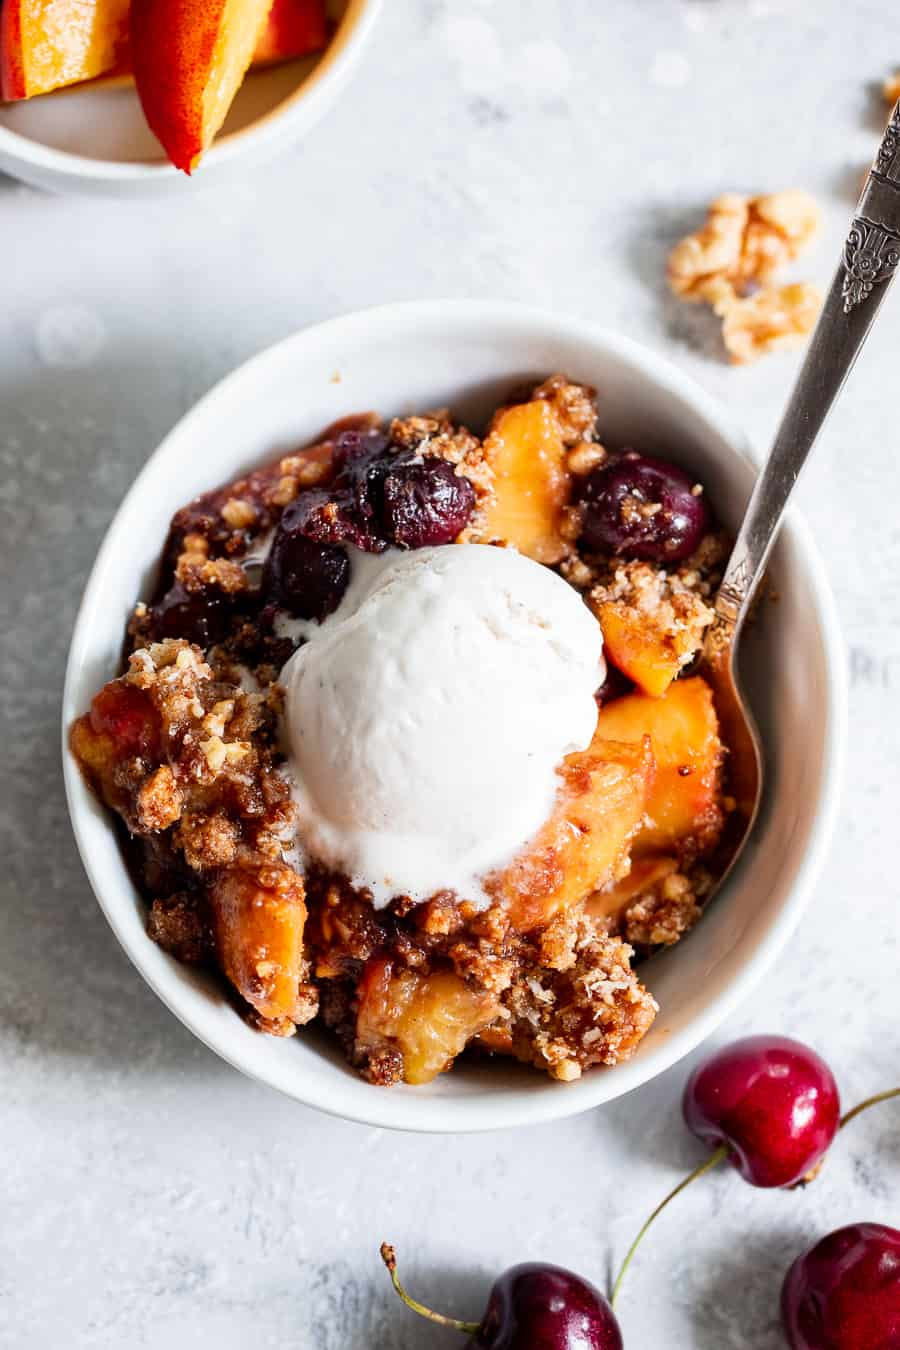 This cherry and peach crisp is irresistibly delicious and easy to make!  A sweet gooey peach and cherry filling is topped with a toasty crumble for a summer dessert that will make everyone come back for seconds.  It's paleo, vegan, gluten-free, dairy-free and refined sugar free. #vegan #paleo #cleaneating #paleodessert